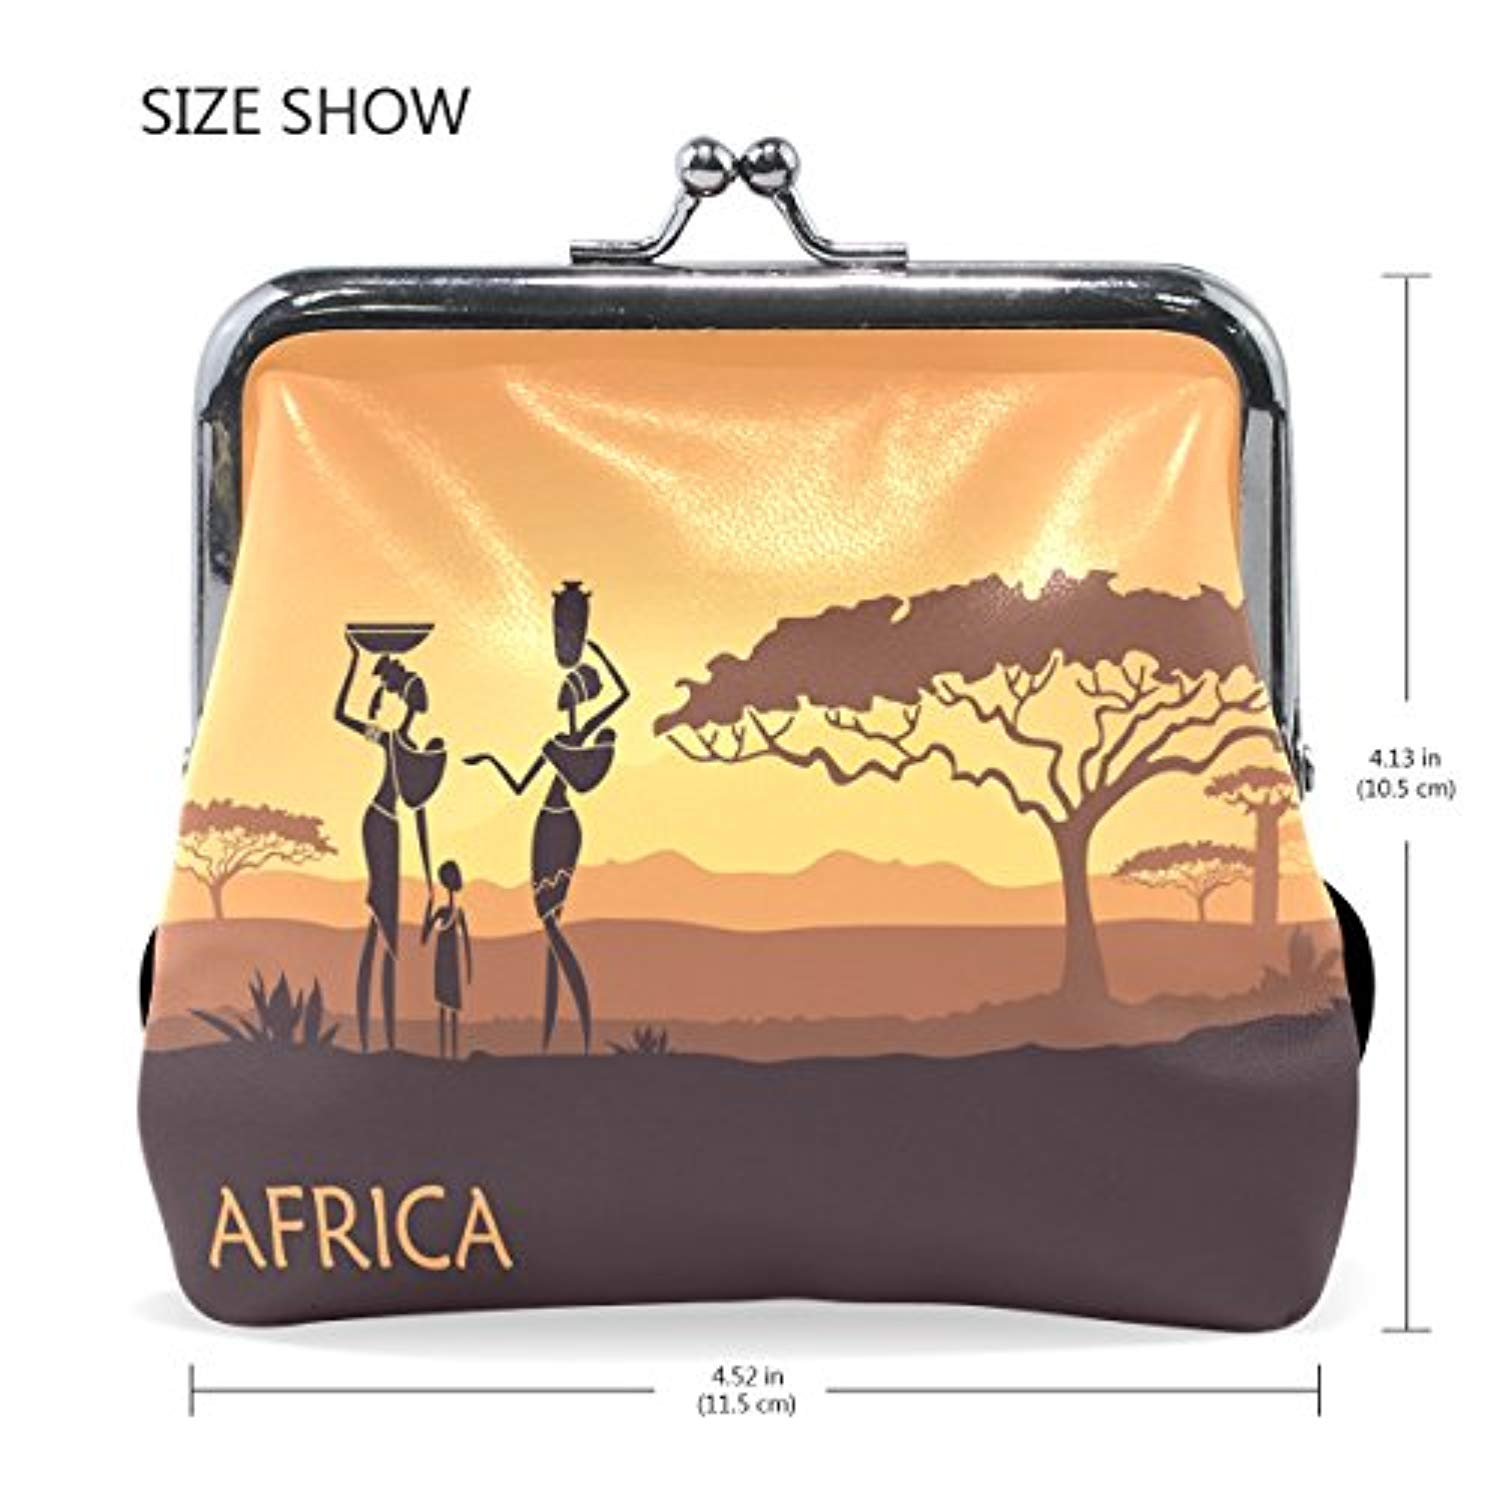 Leather Coin Purse Clutch Pouch Handbag with African Sunset Landscape Wallet for Women Girls Students - Ufumbuzi - Home